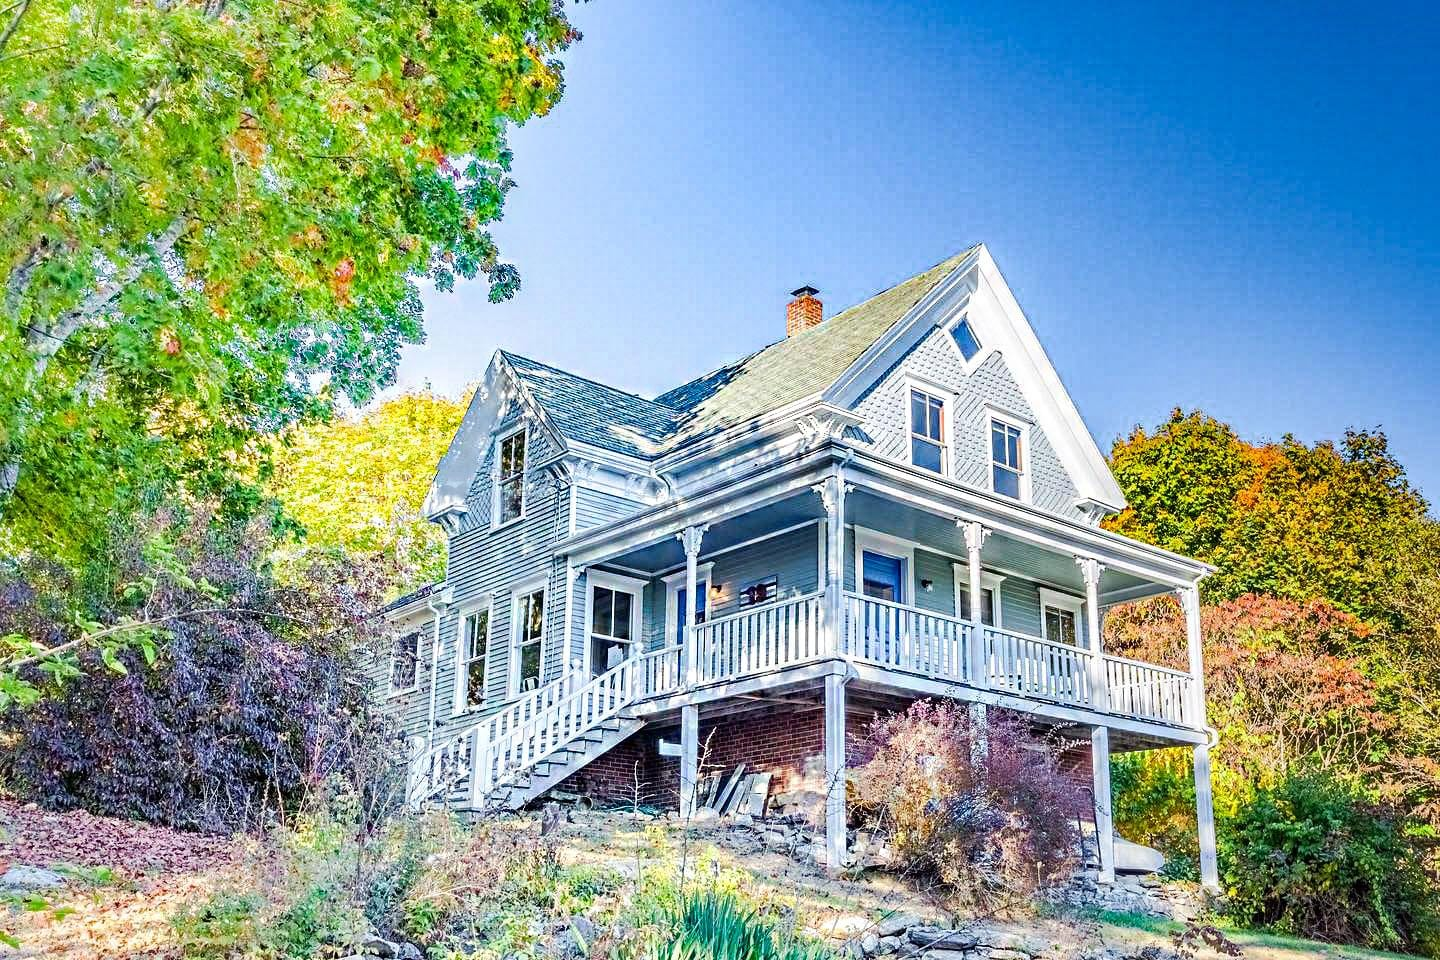 Welcome to South Bristol! Your Victorian getaway is professionally managed by TurnKey Vacation Rentals.